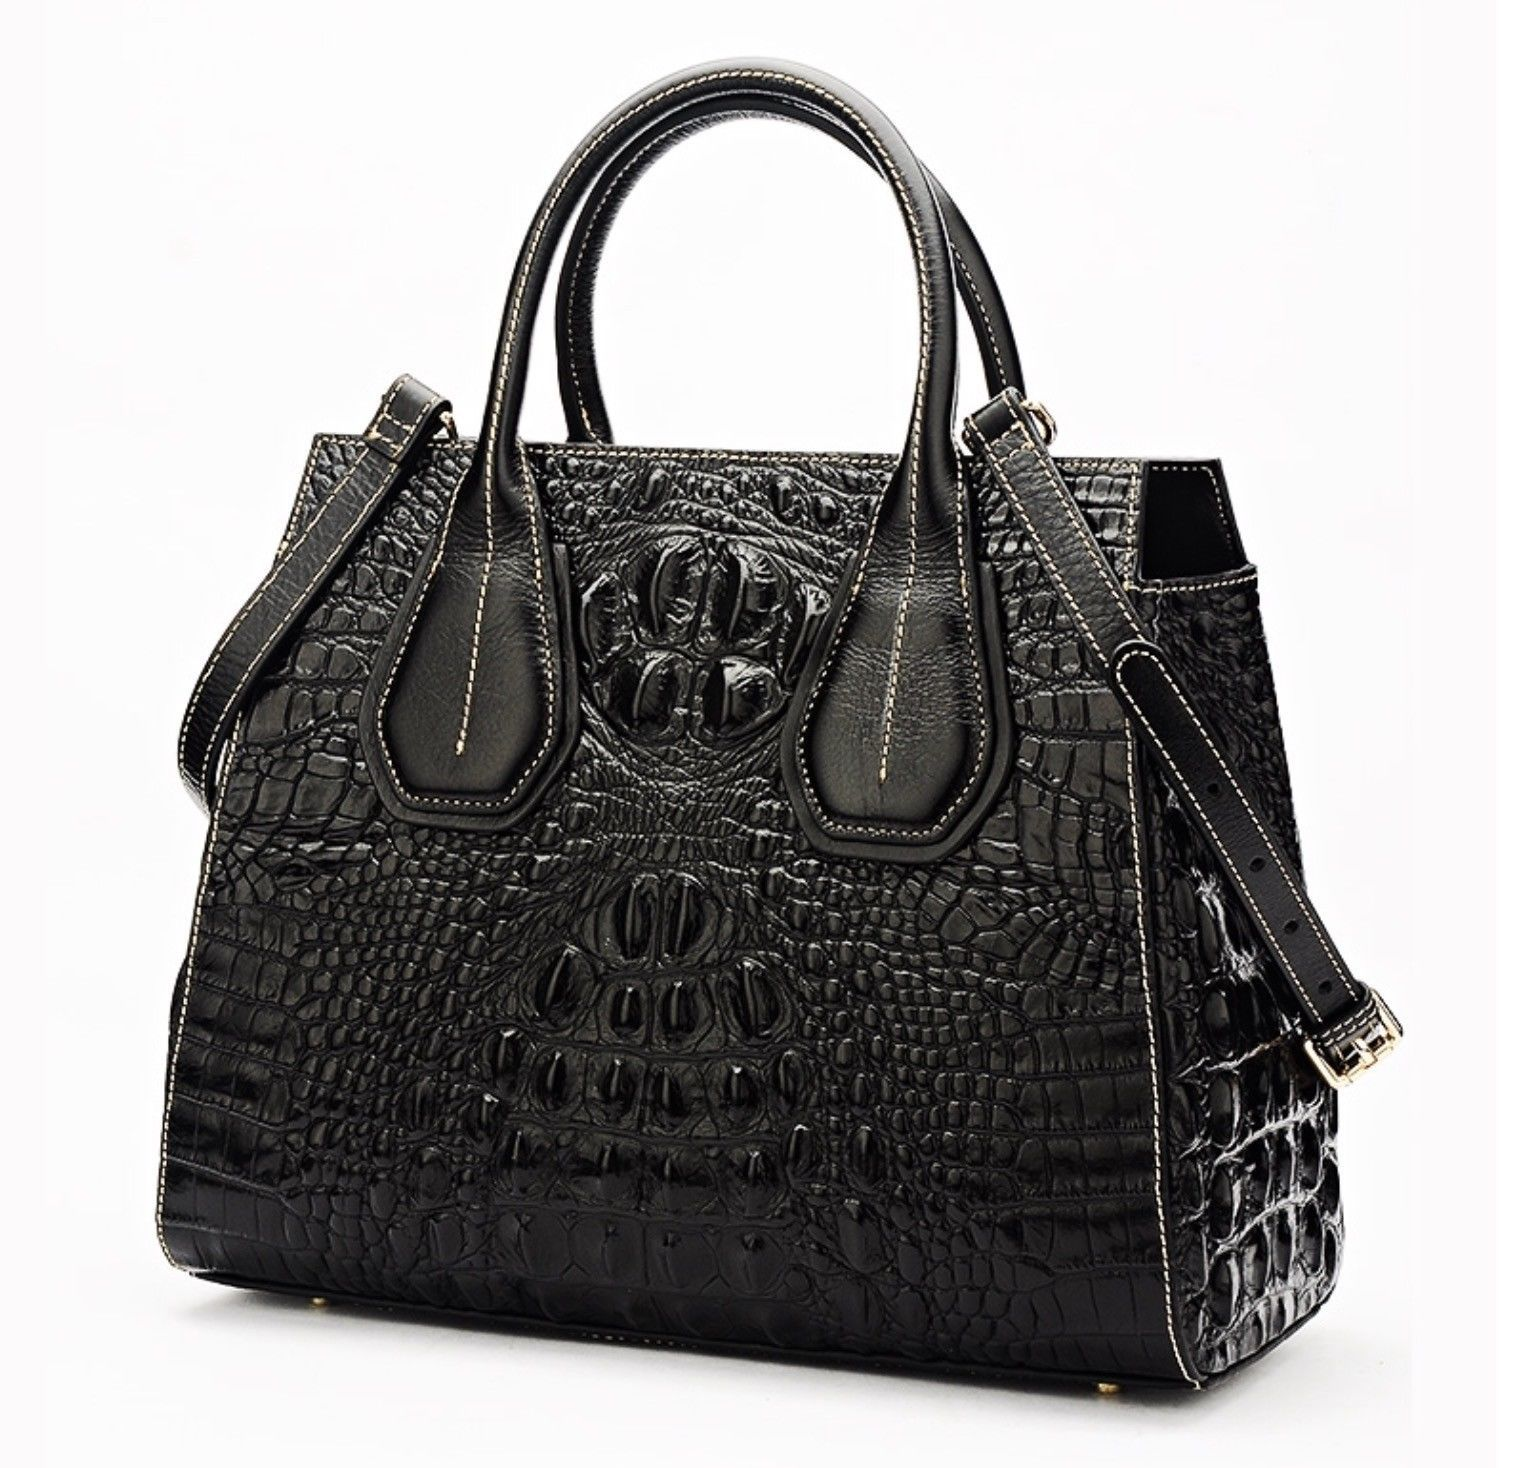 New Crocodile Embossed Italian Leather Handbag Shoulder Bag Satchel Croc Bag